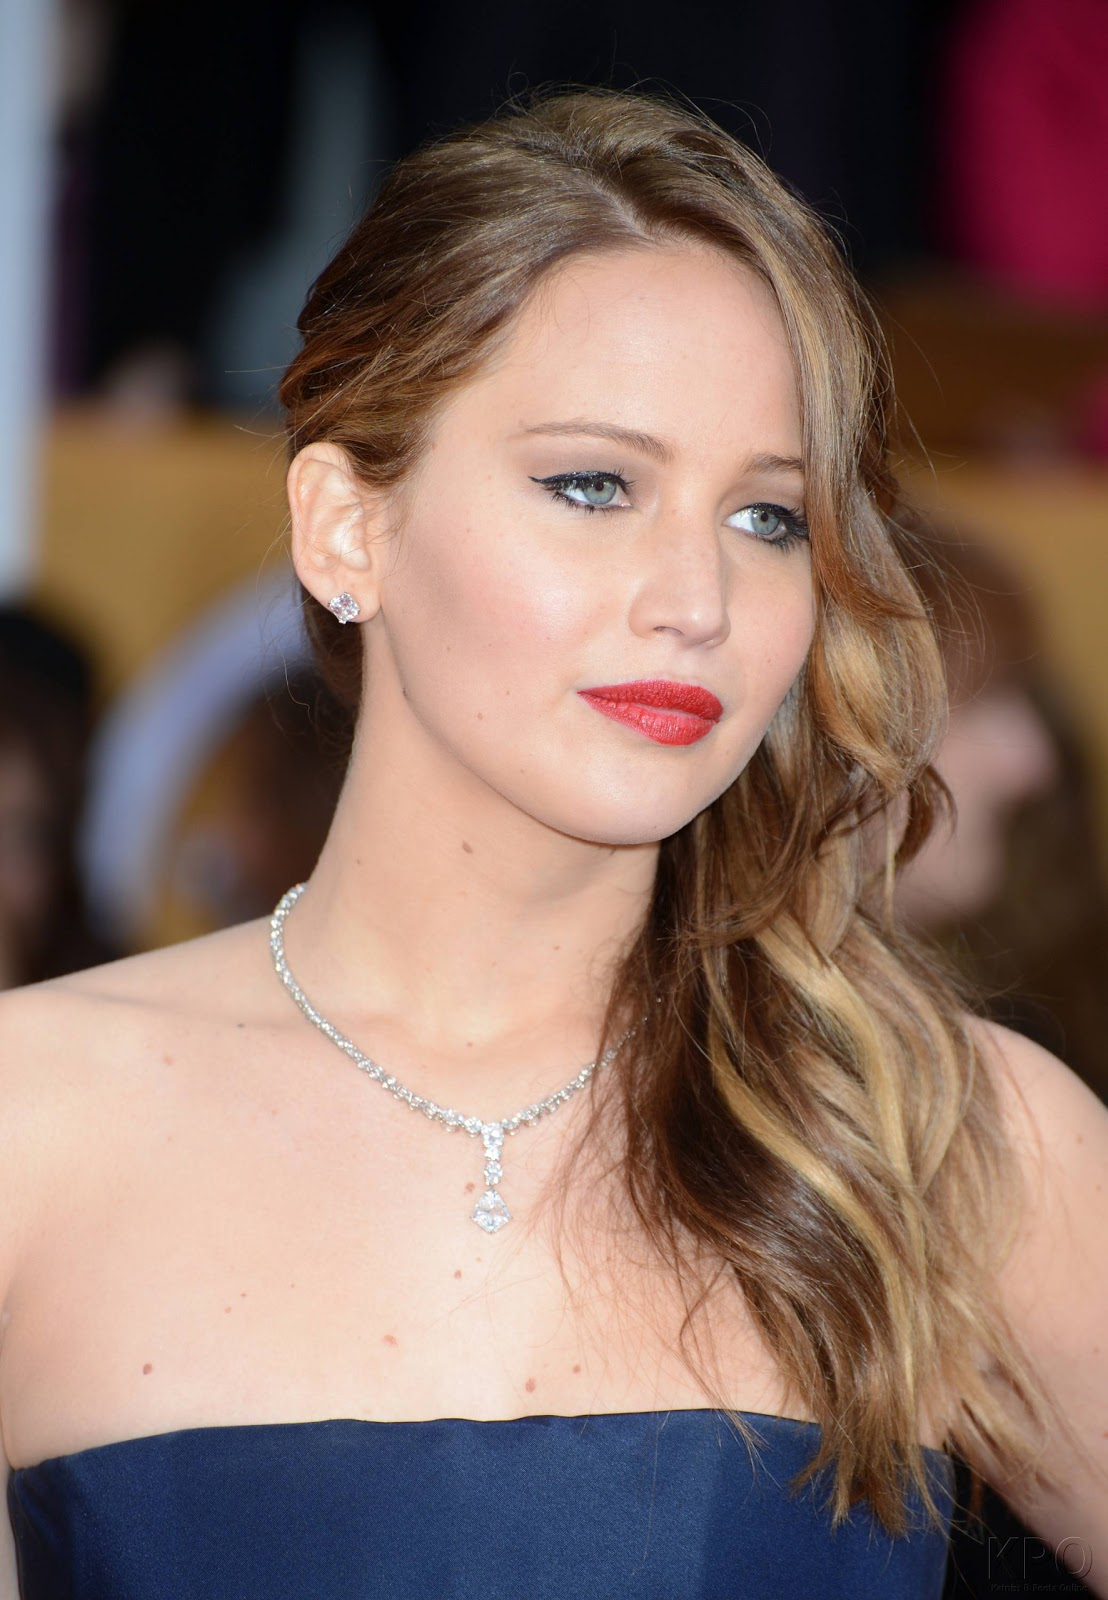 Jennifer Lawrence Makeup Tutorial: Jennifer Lawrence Fansite: Jennifer Lawrence At The SAG Awards